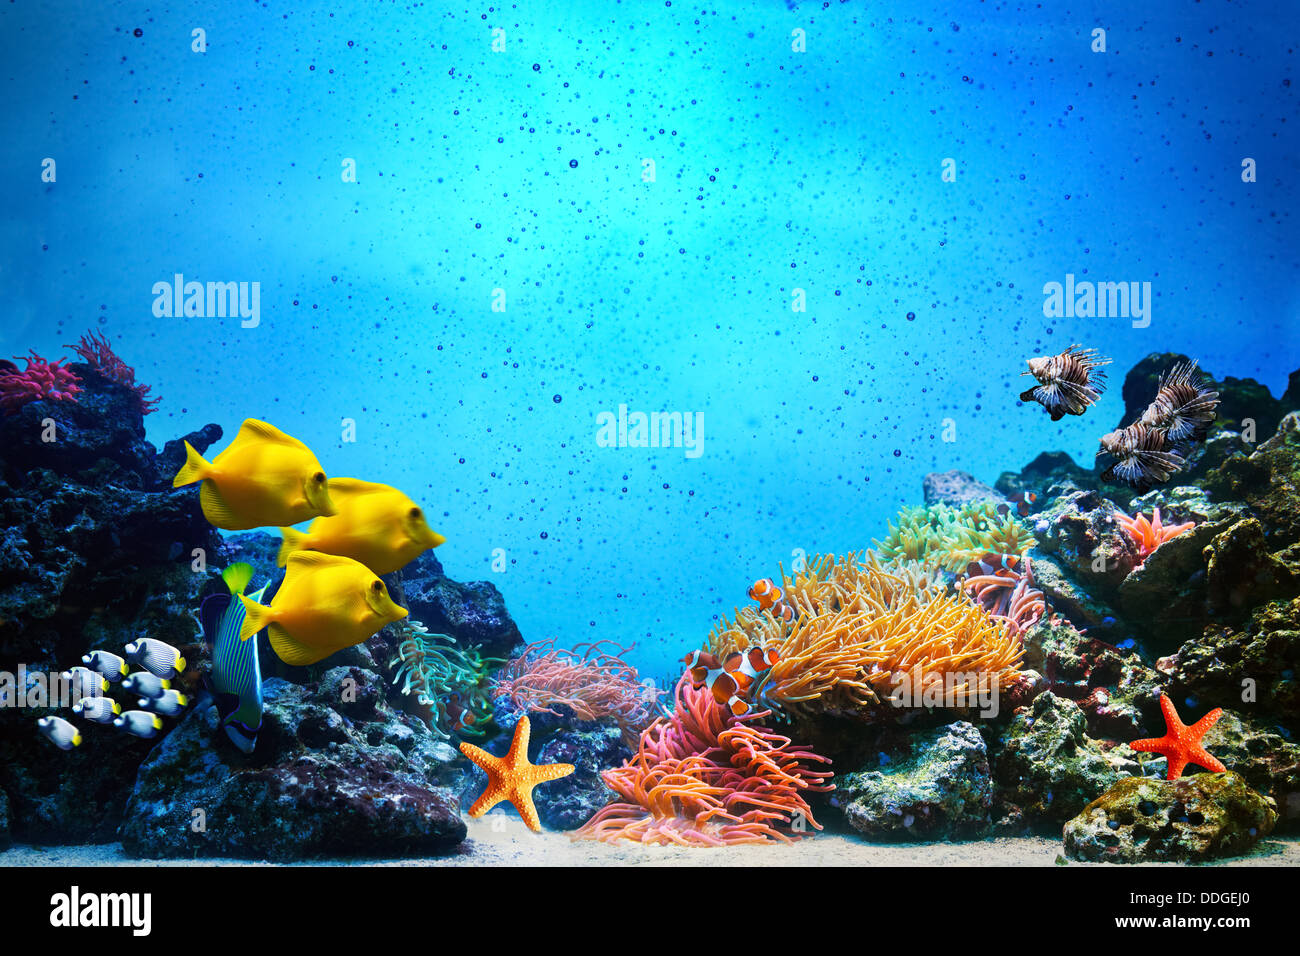 Underwater scene with coral reef - Stock Image